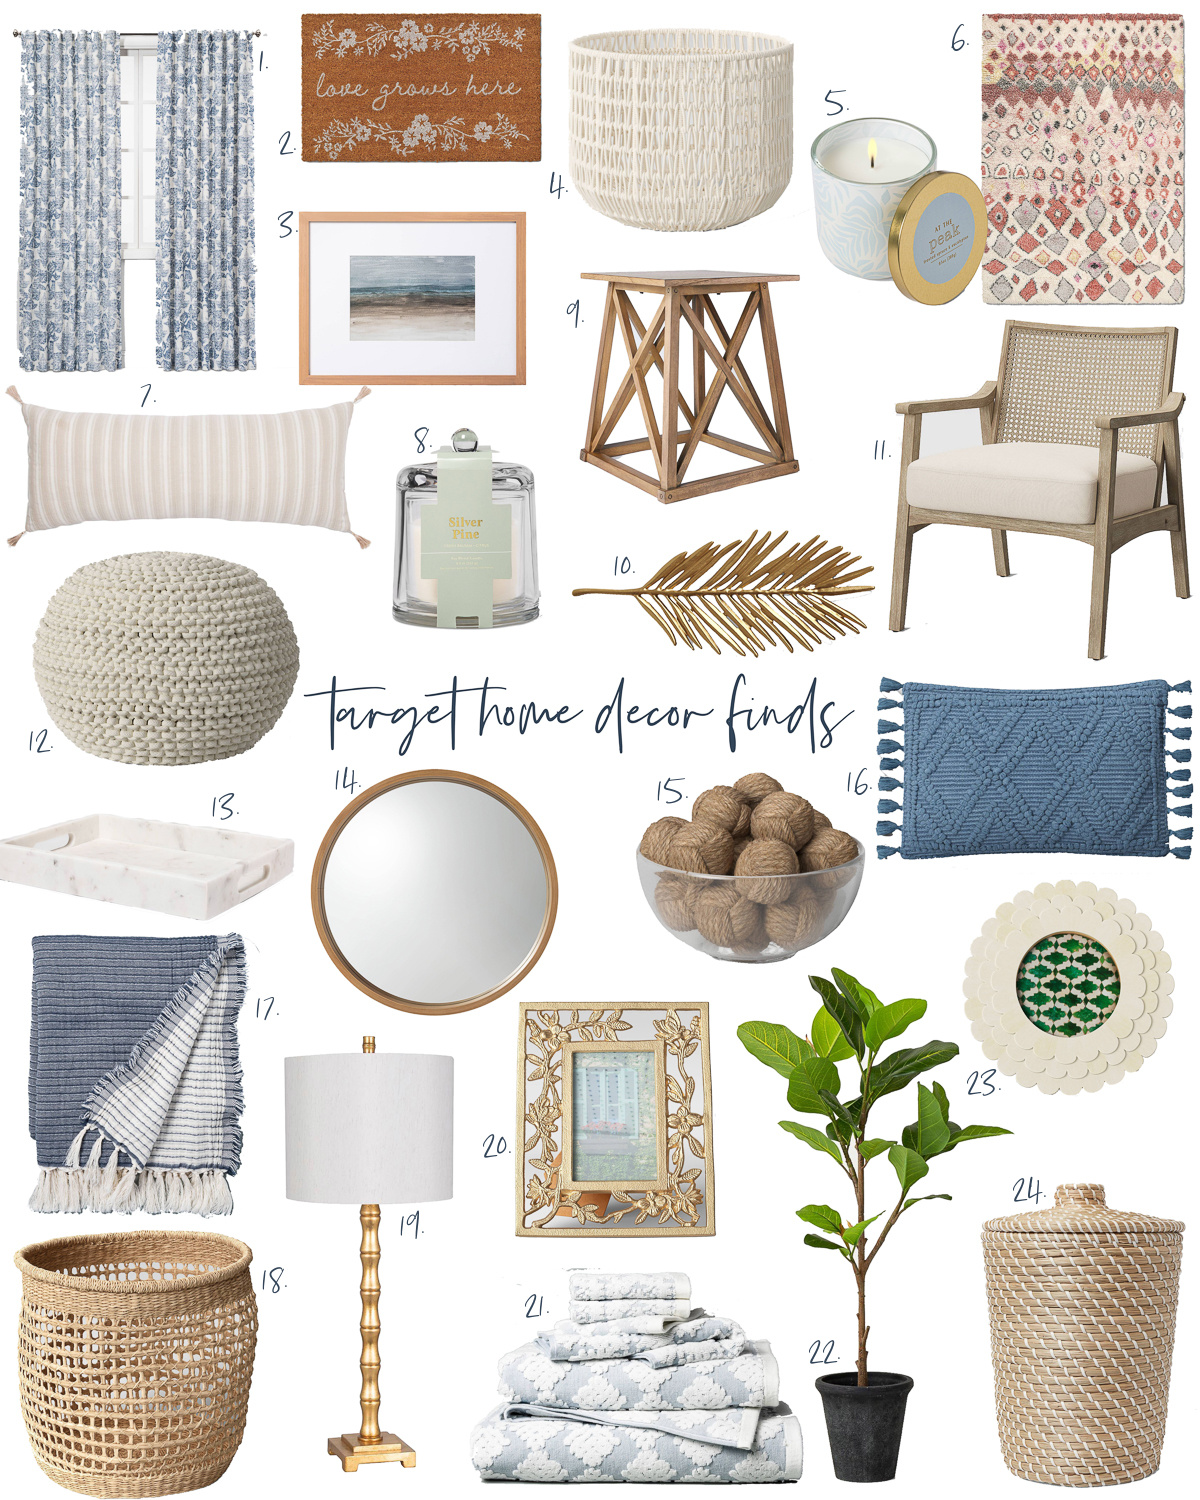 Target Home Decor Finds Life With Emily